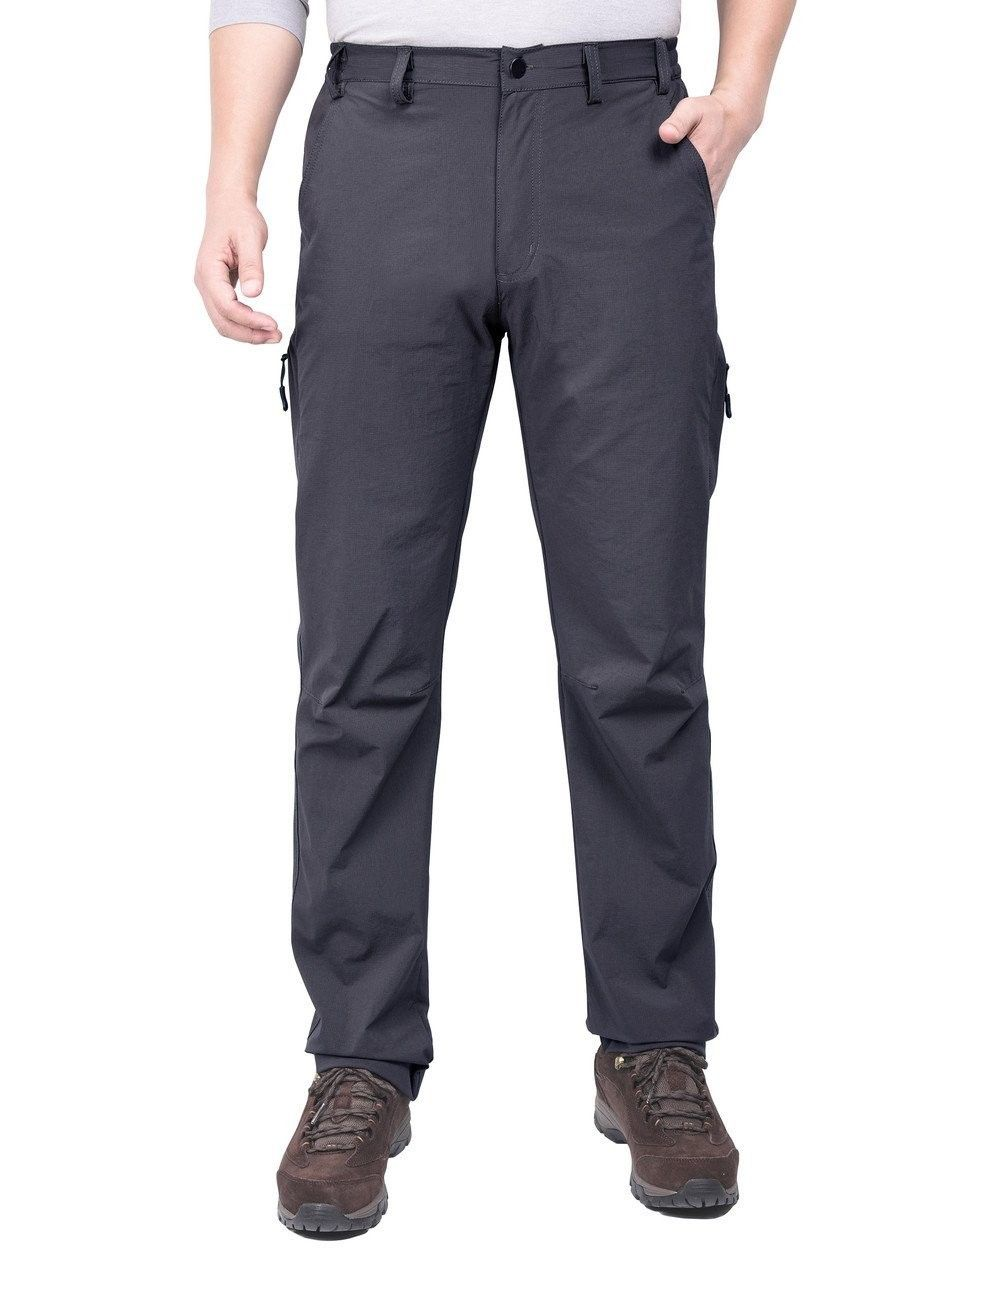 Men's Soft Breathable Belted Quick Dry Water Resistent Cargo Pants -   Gray  - C5184UAOHD0   #ActivePants #Men's #Clothing # #Active # #Active #Pants